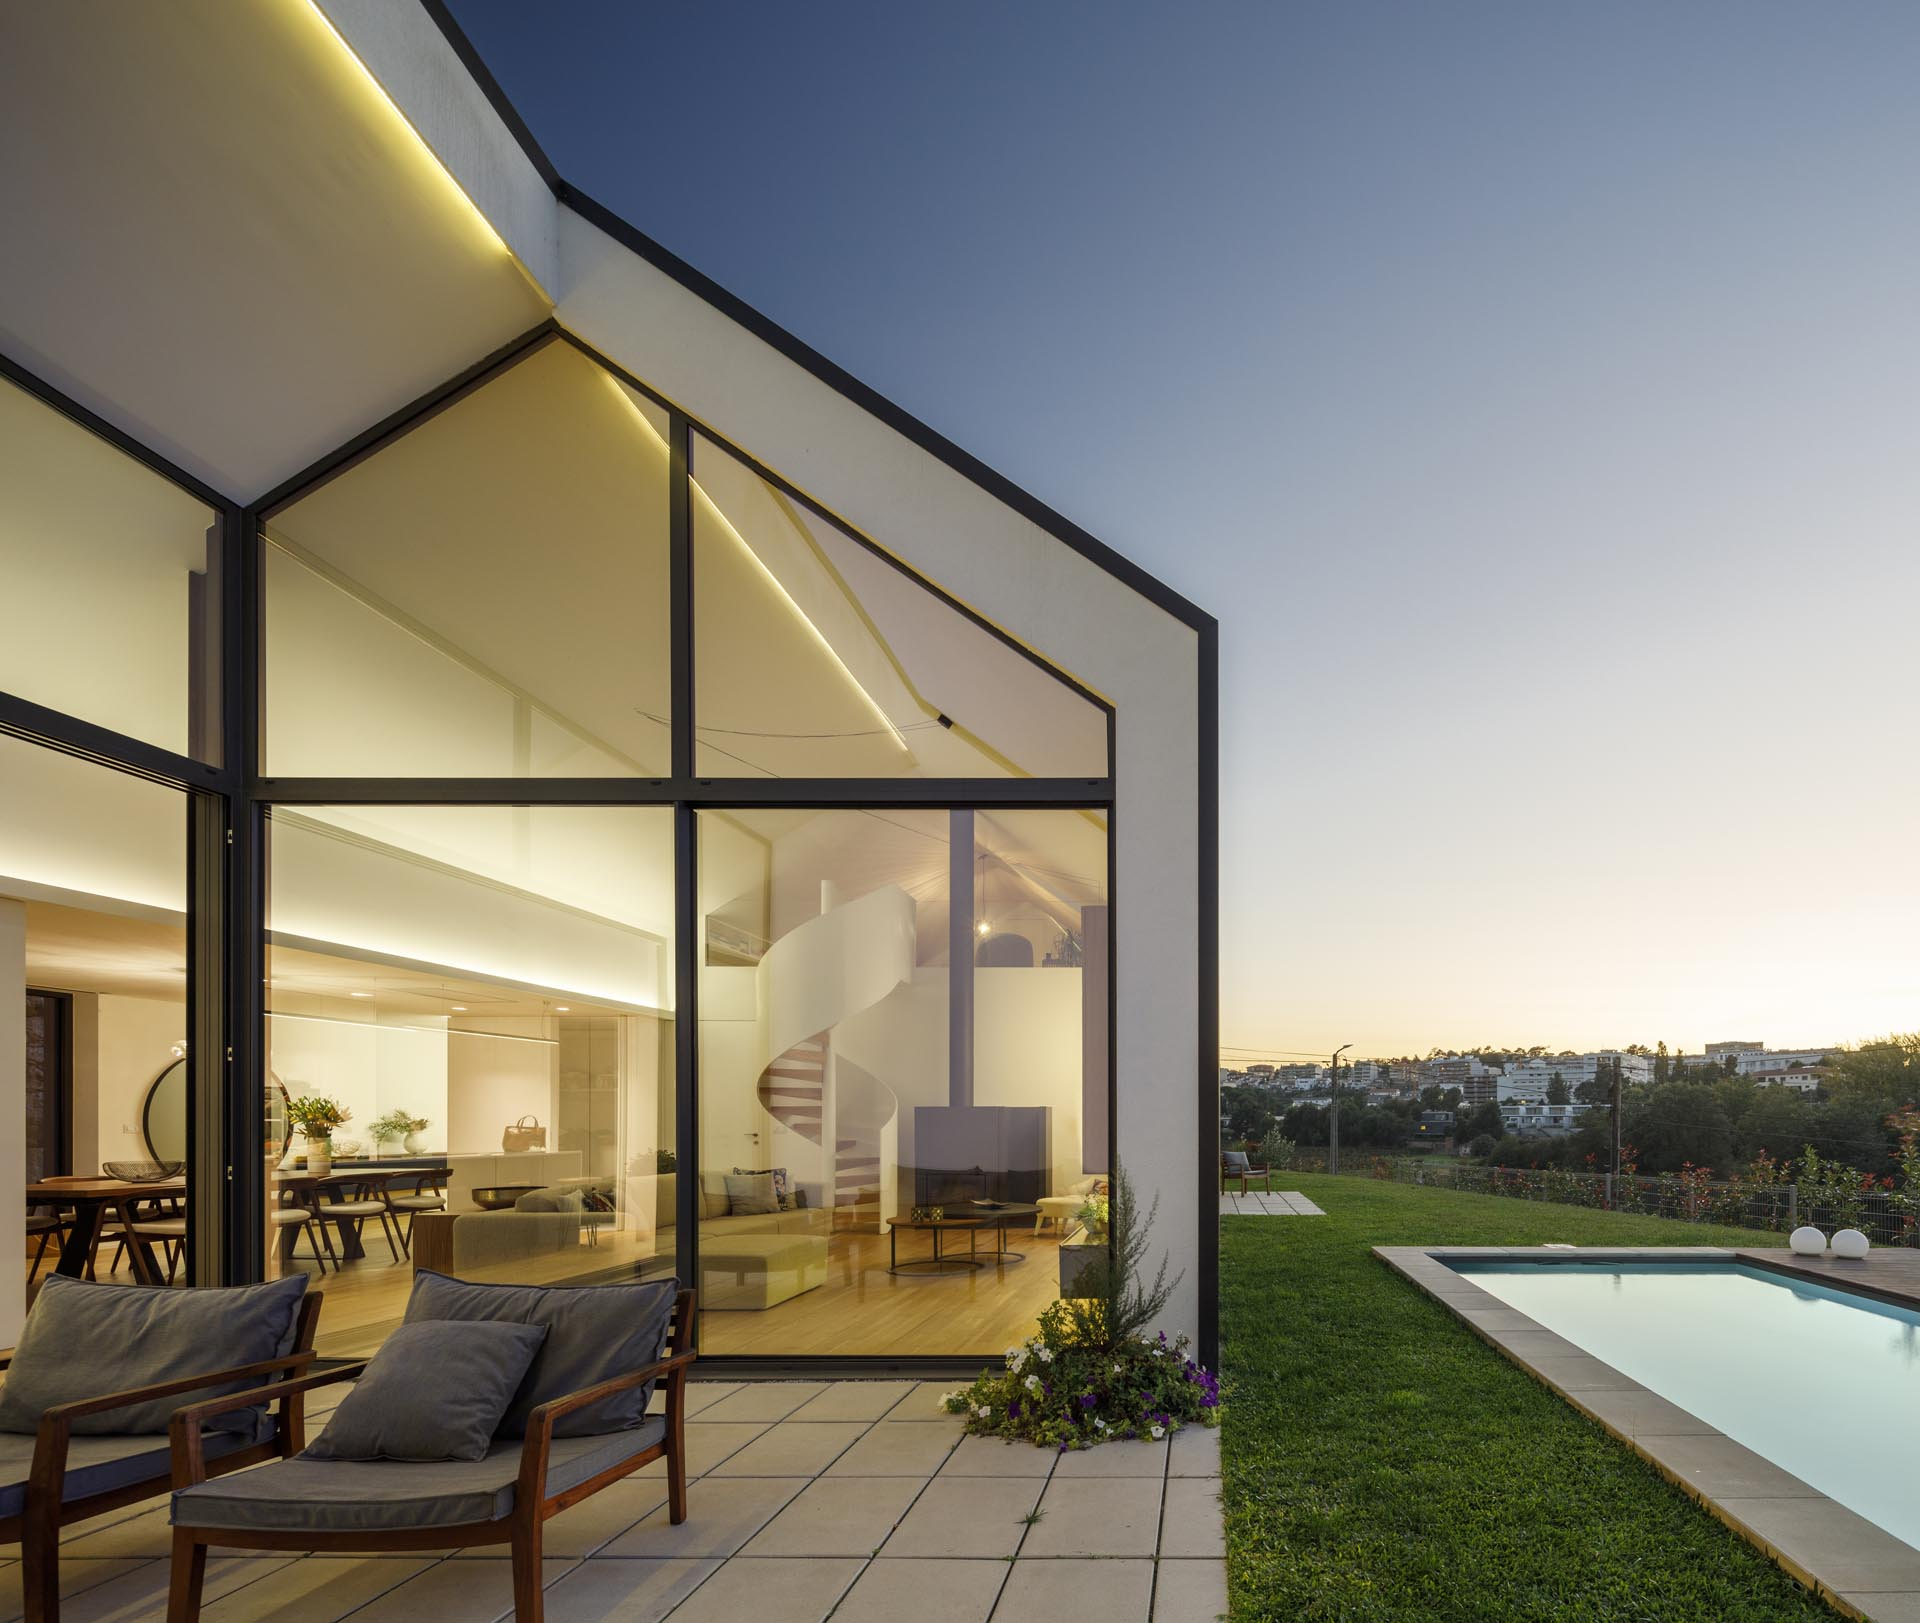 A modern house open to a small patio, the yard, and a swimming pool.